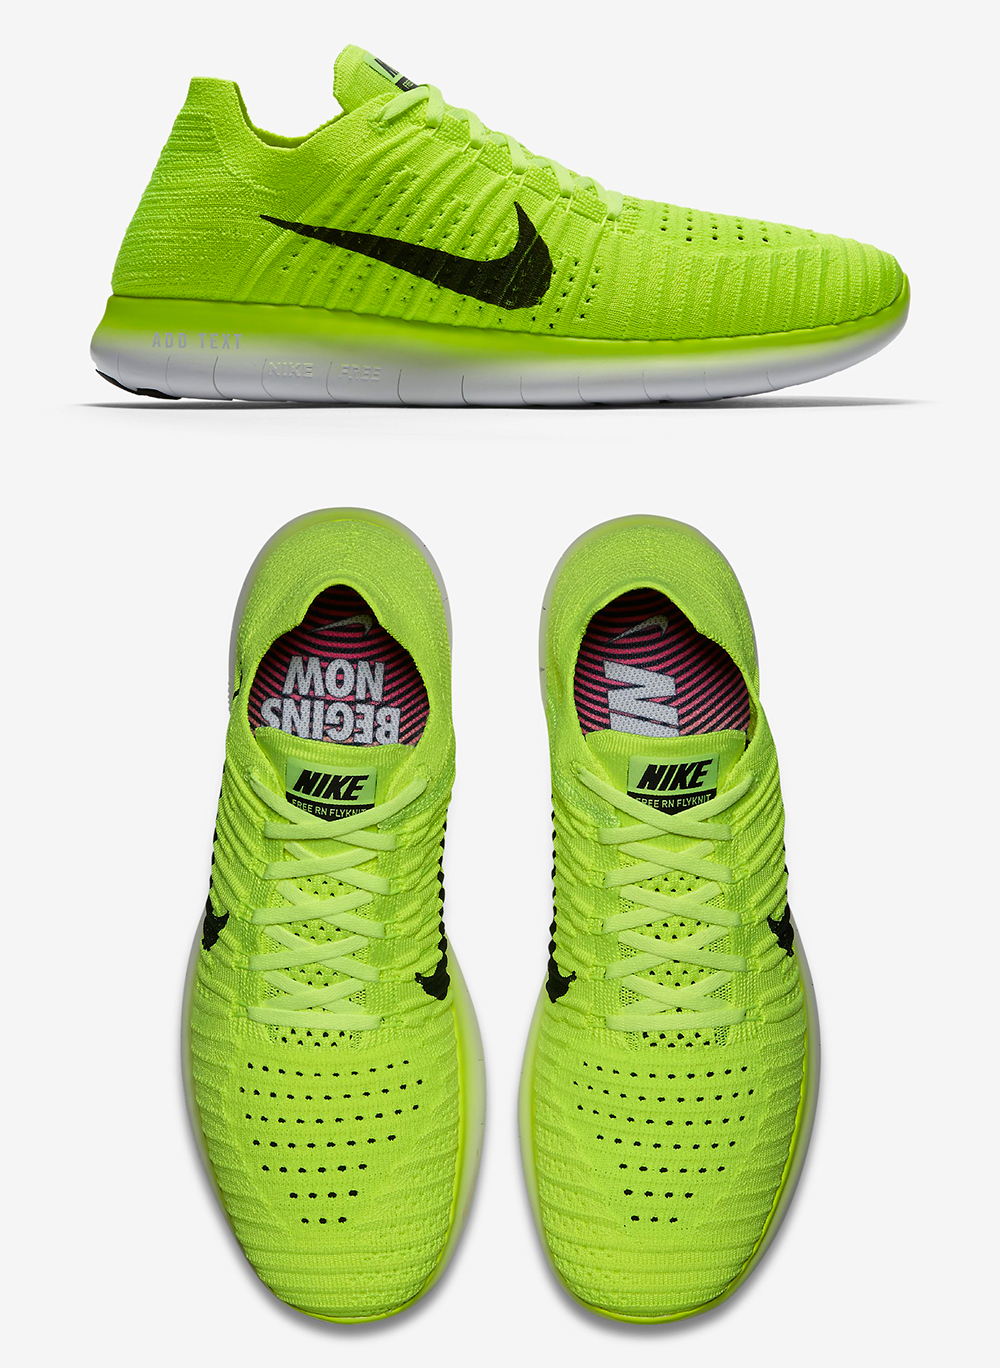 Nike USA podium neon shoes